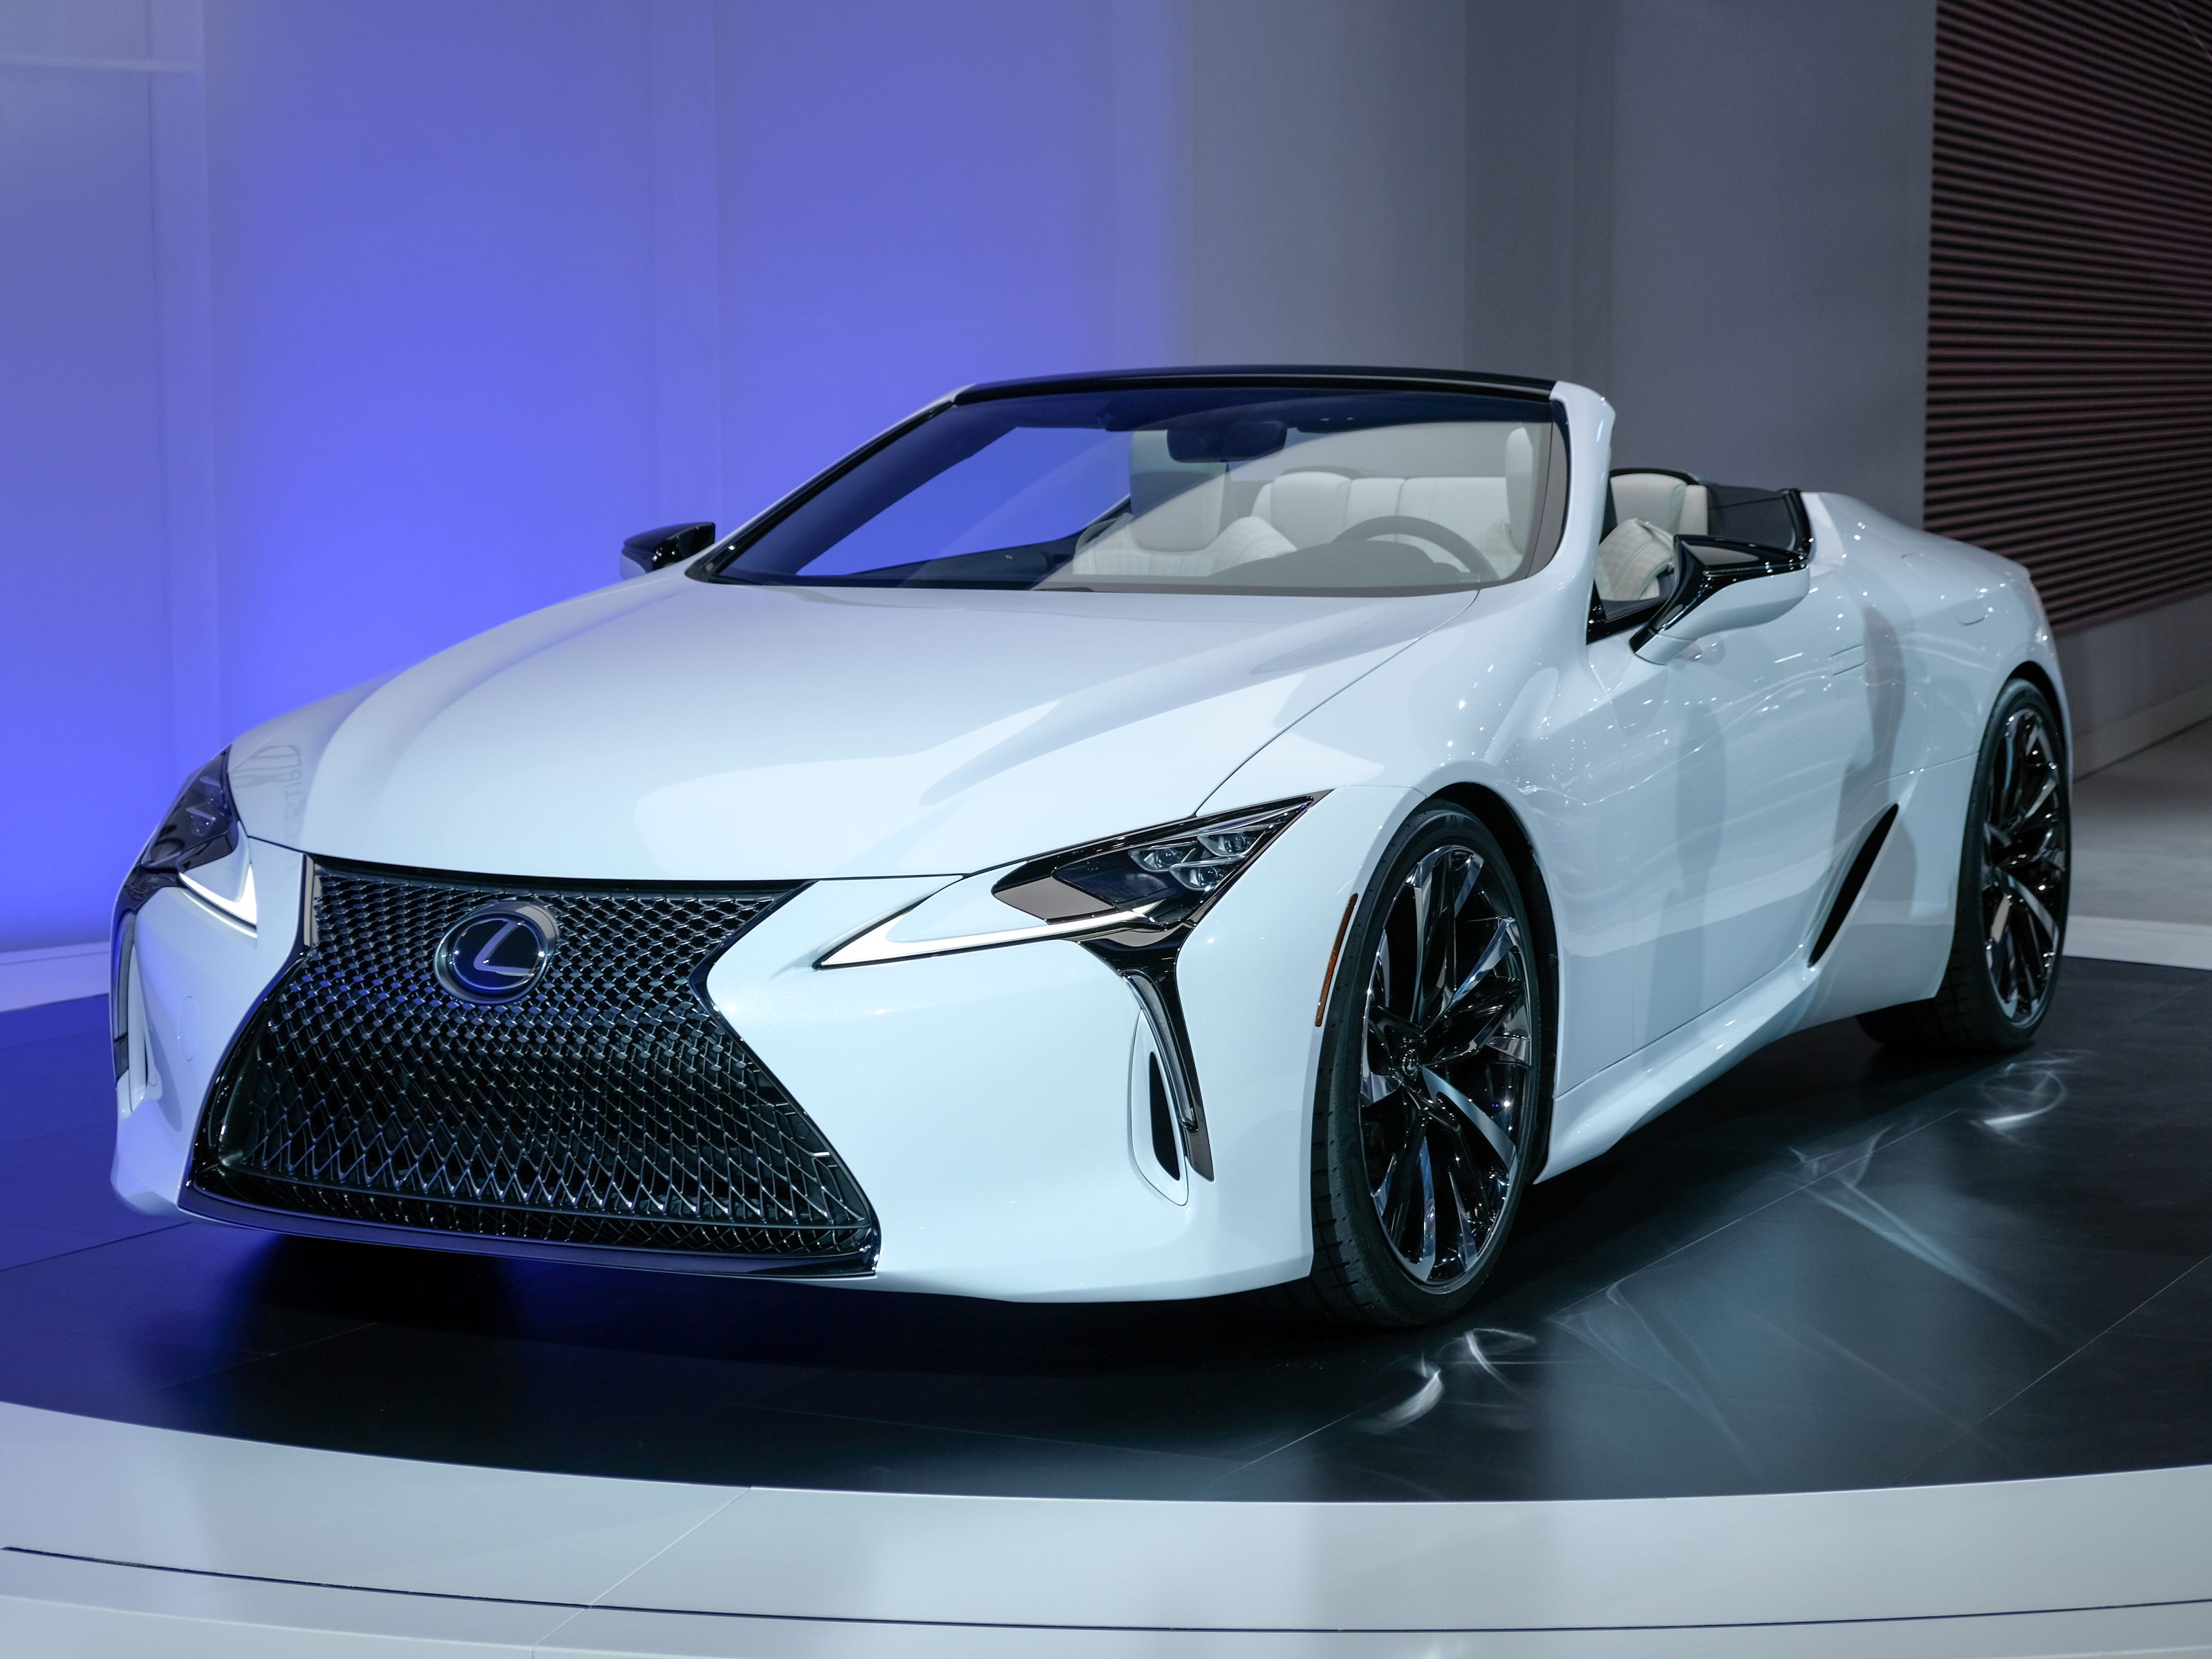 A Lexus LC Convertible Concept sits on the stage during the 2019 North American International Auto Show held at Cobo Center in downtown Detroit on Tuesday, Jan. 15, 2019.  (Via OlyDrop)